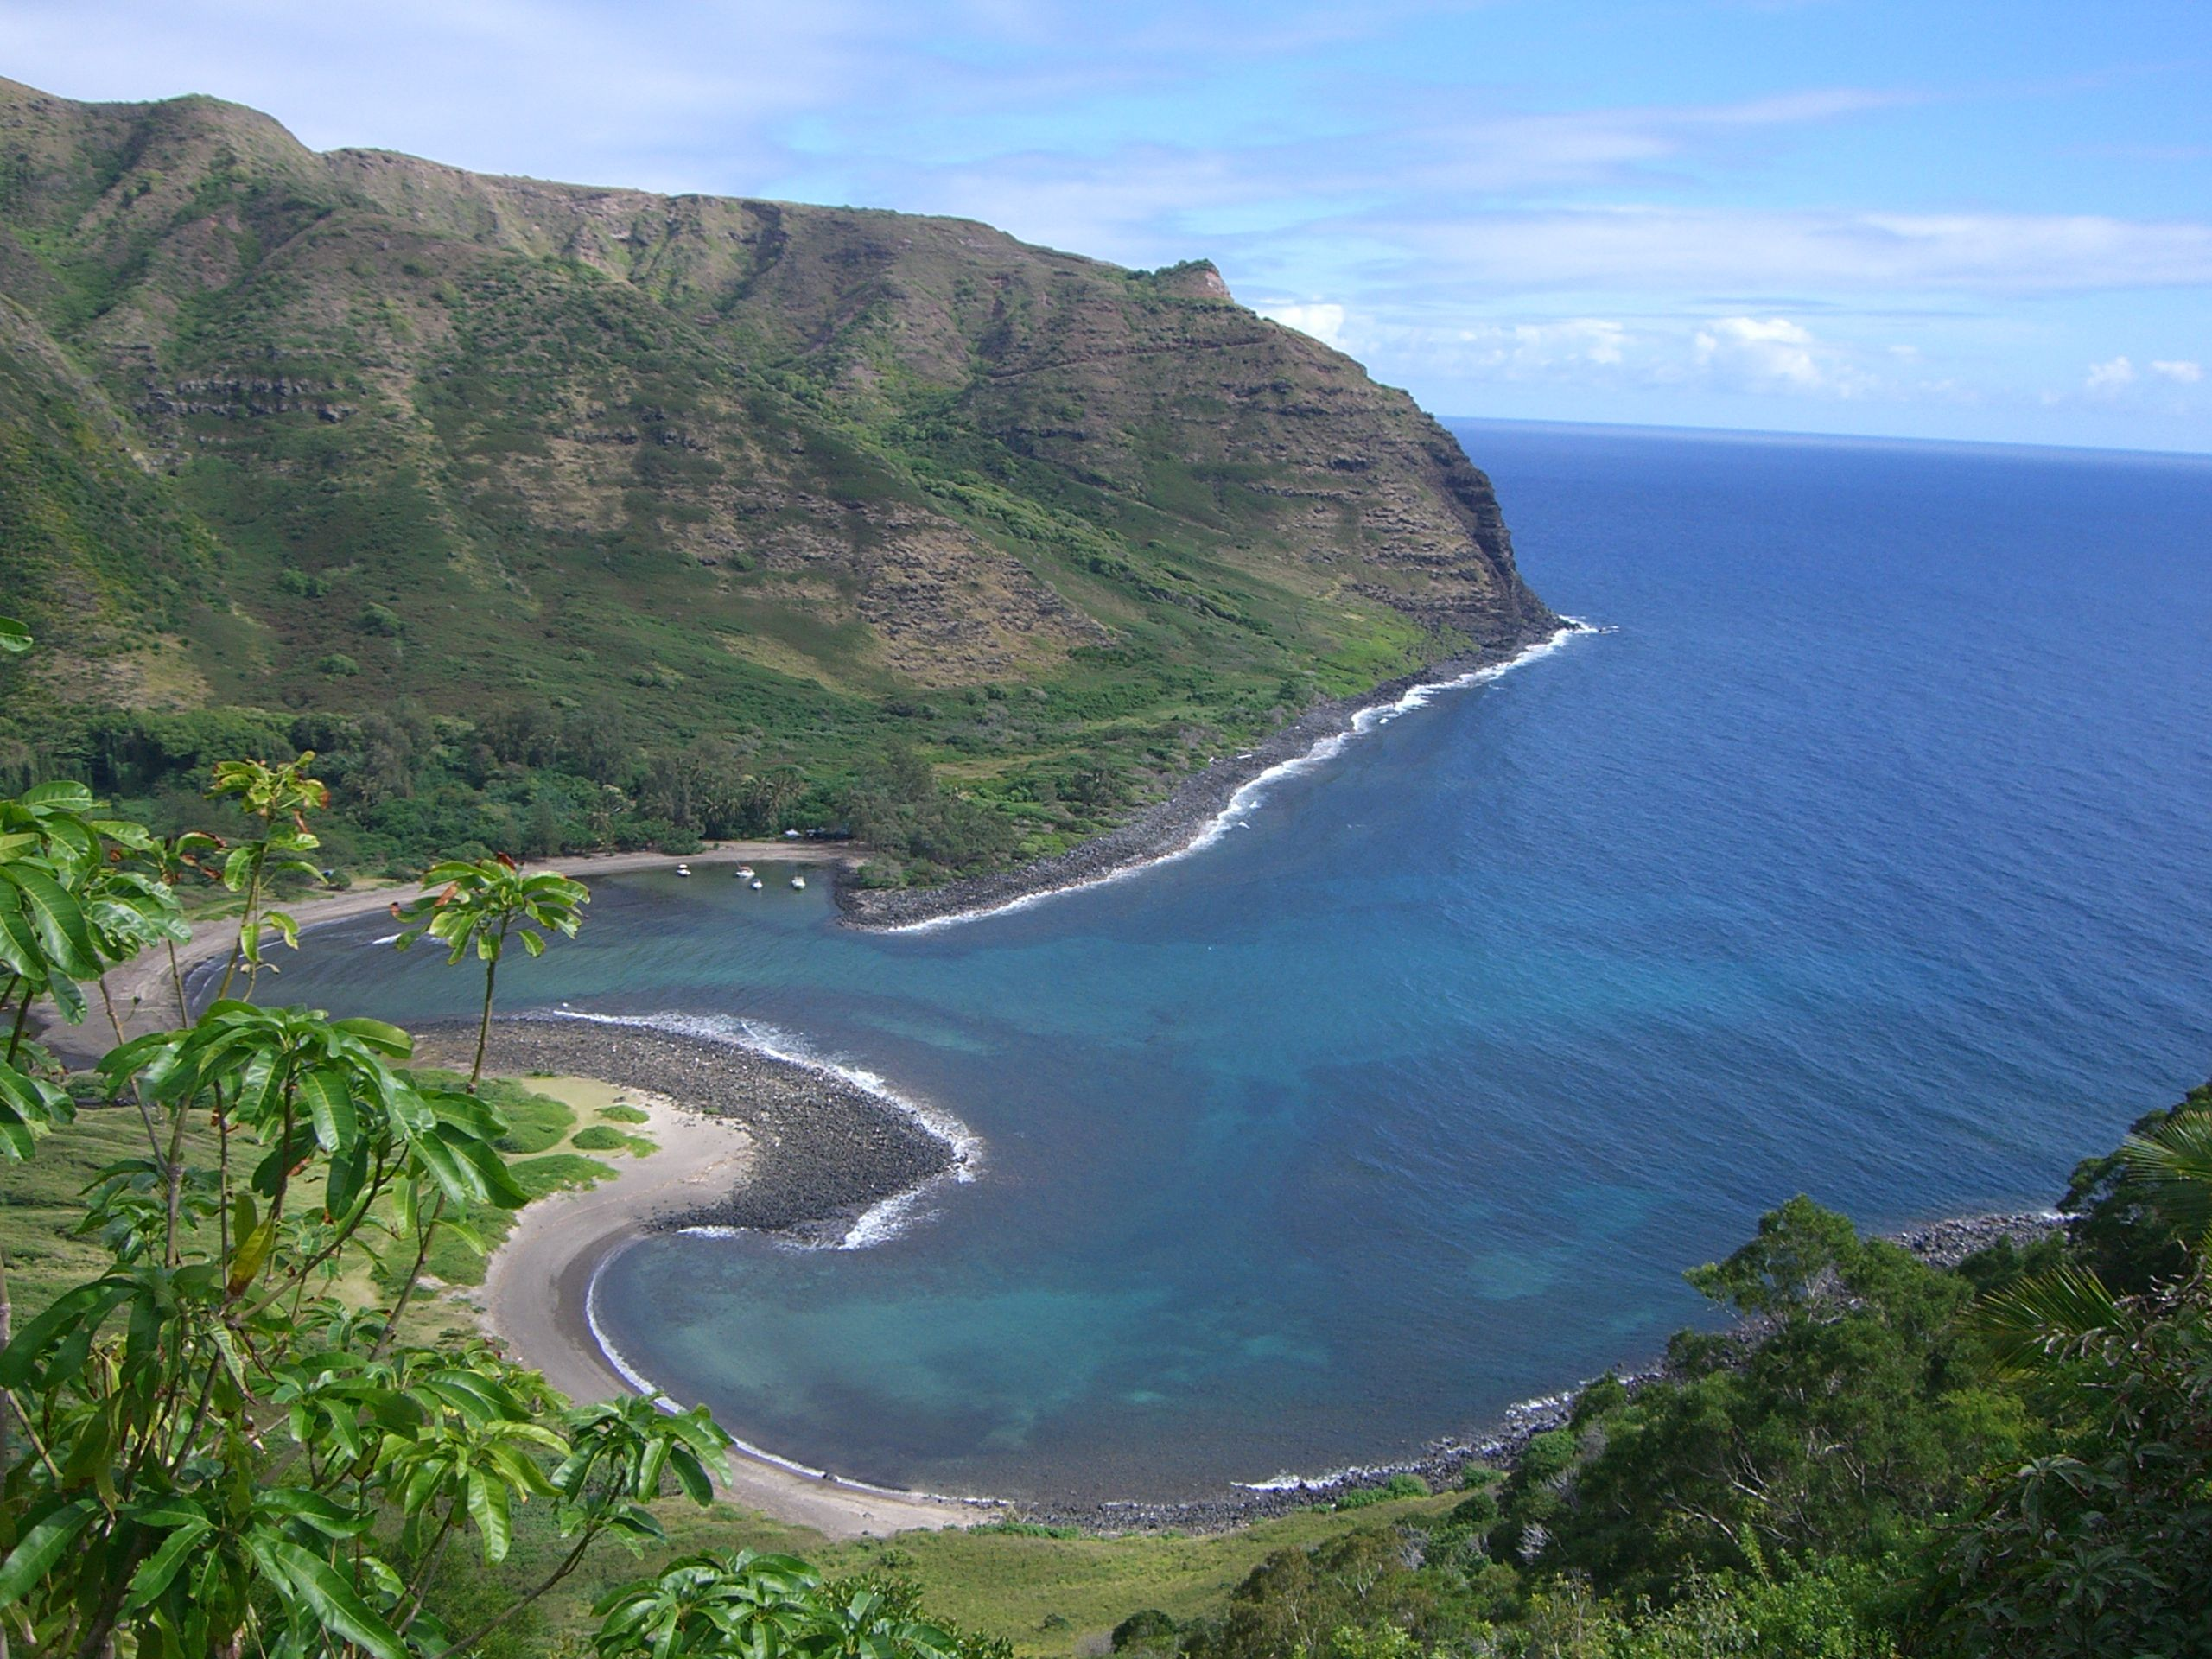 planning | One Week on Maui